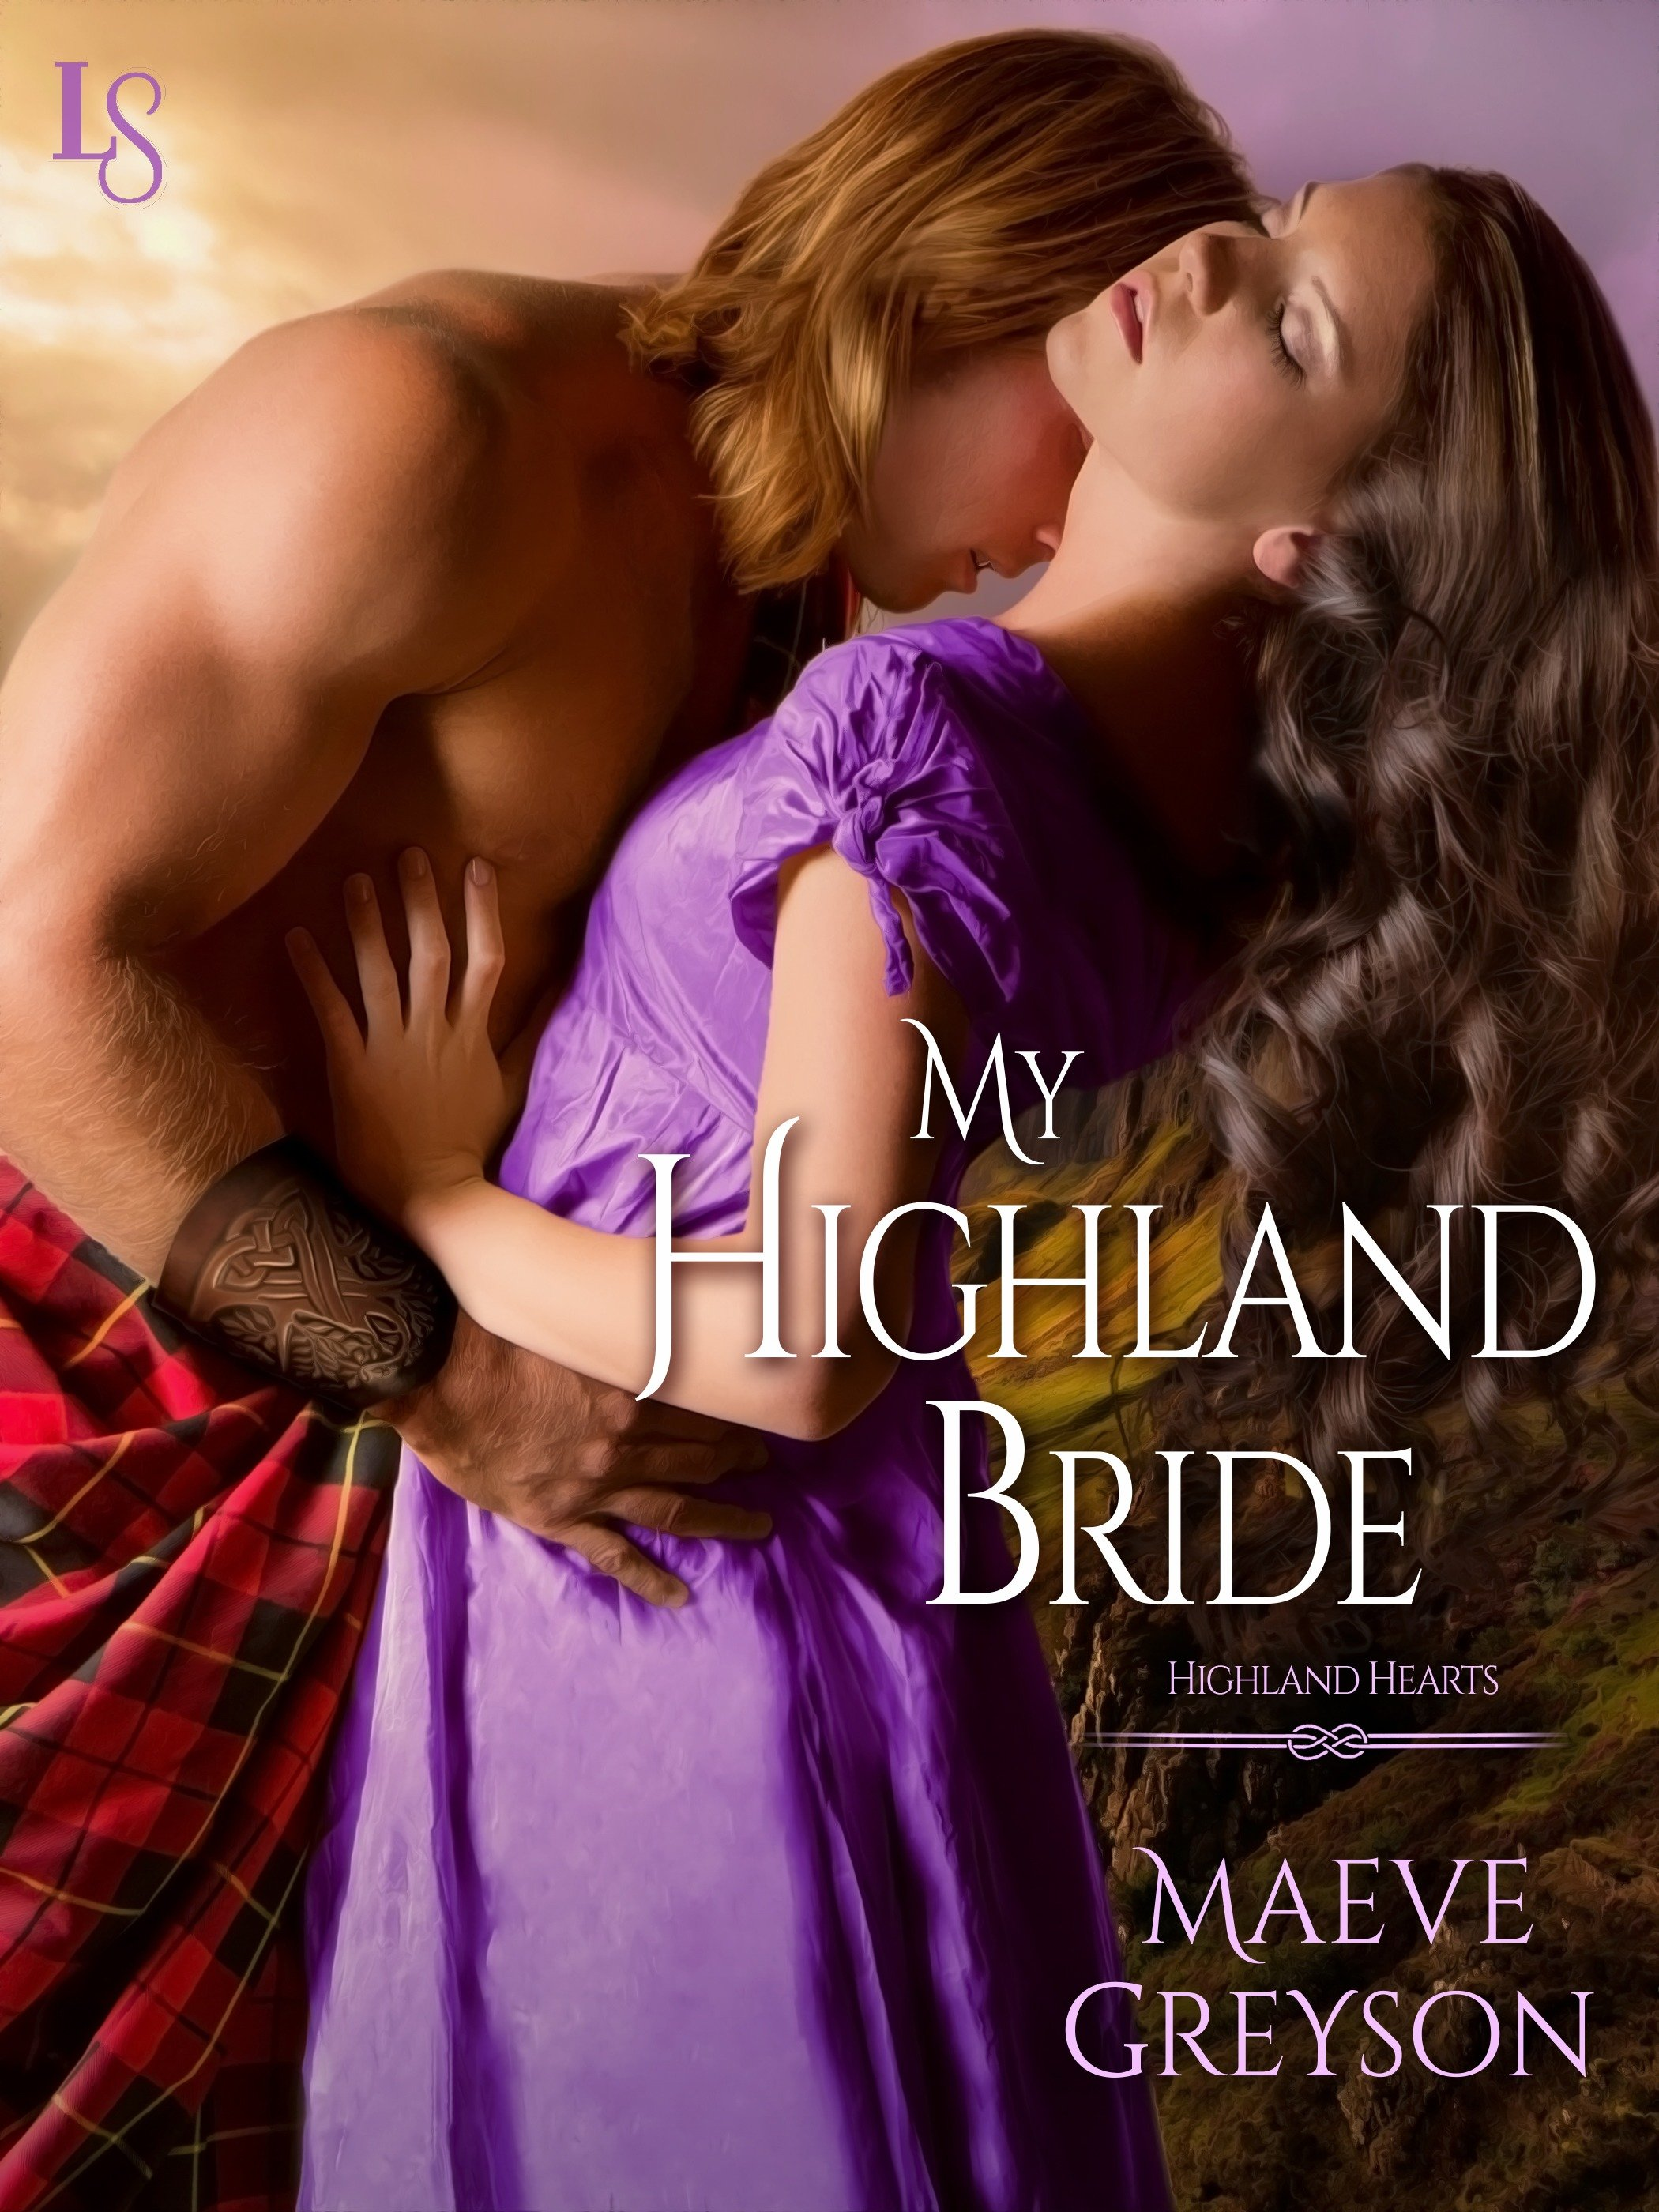 My highland bride cover image